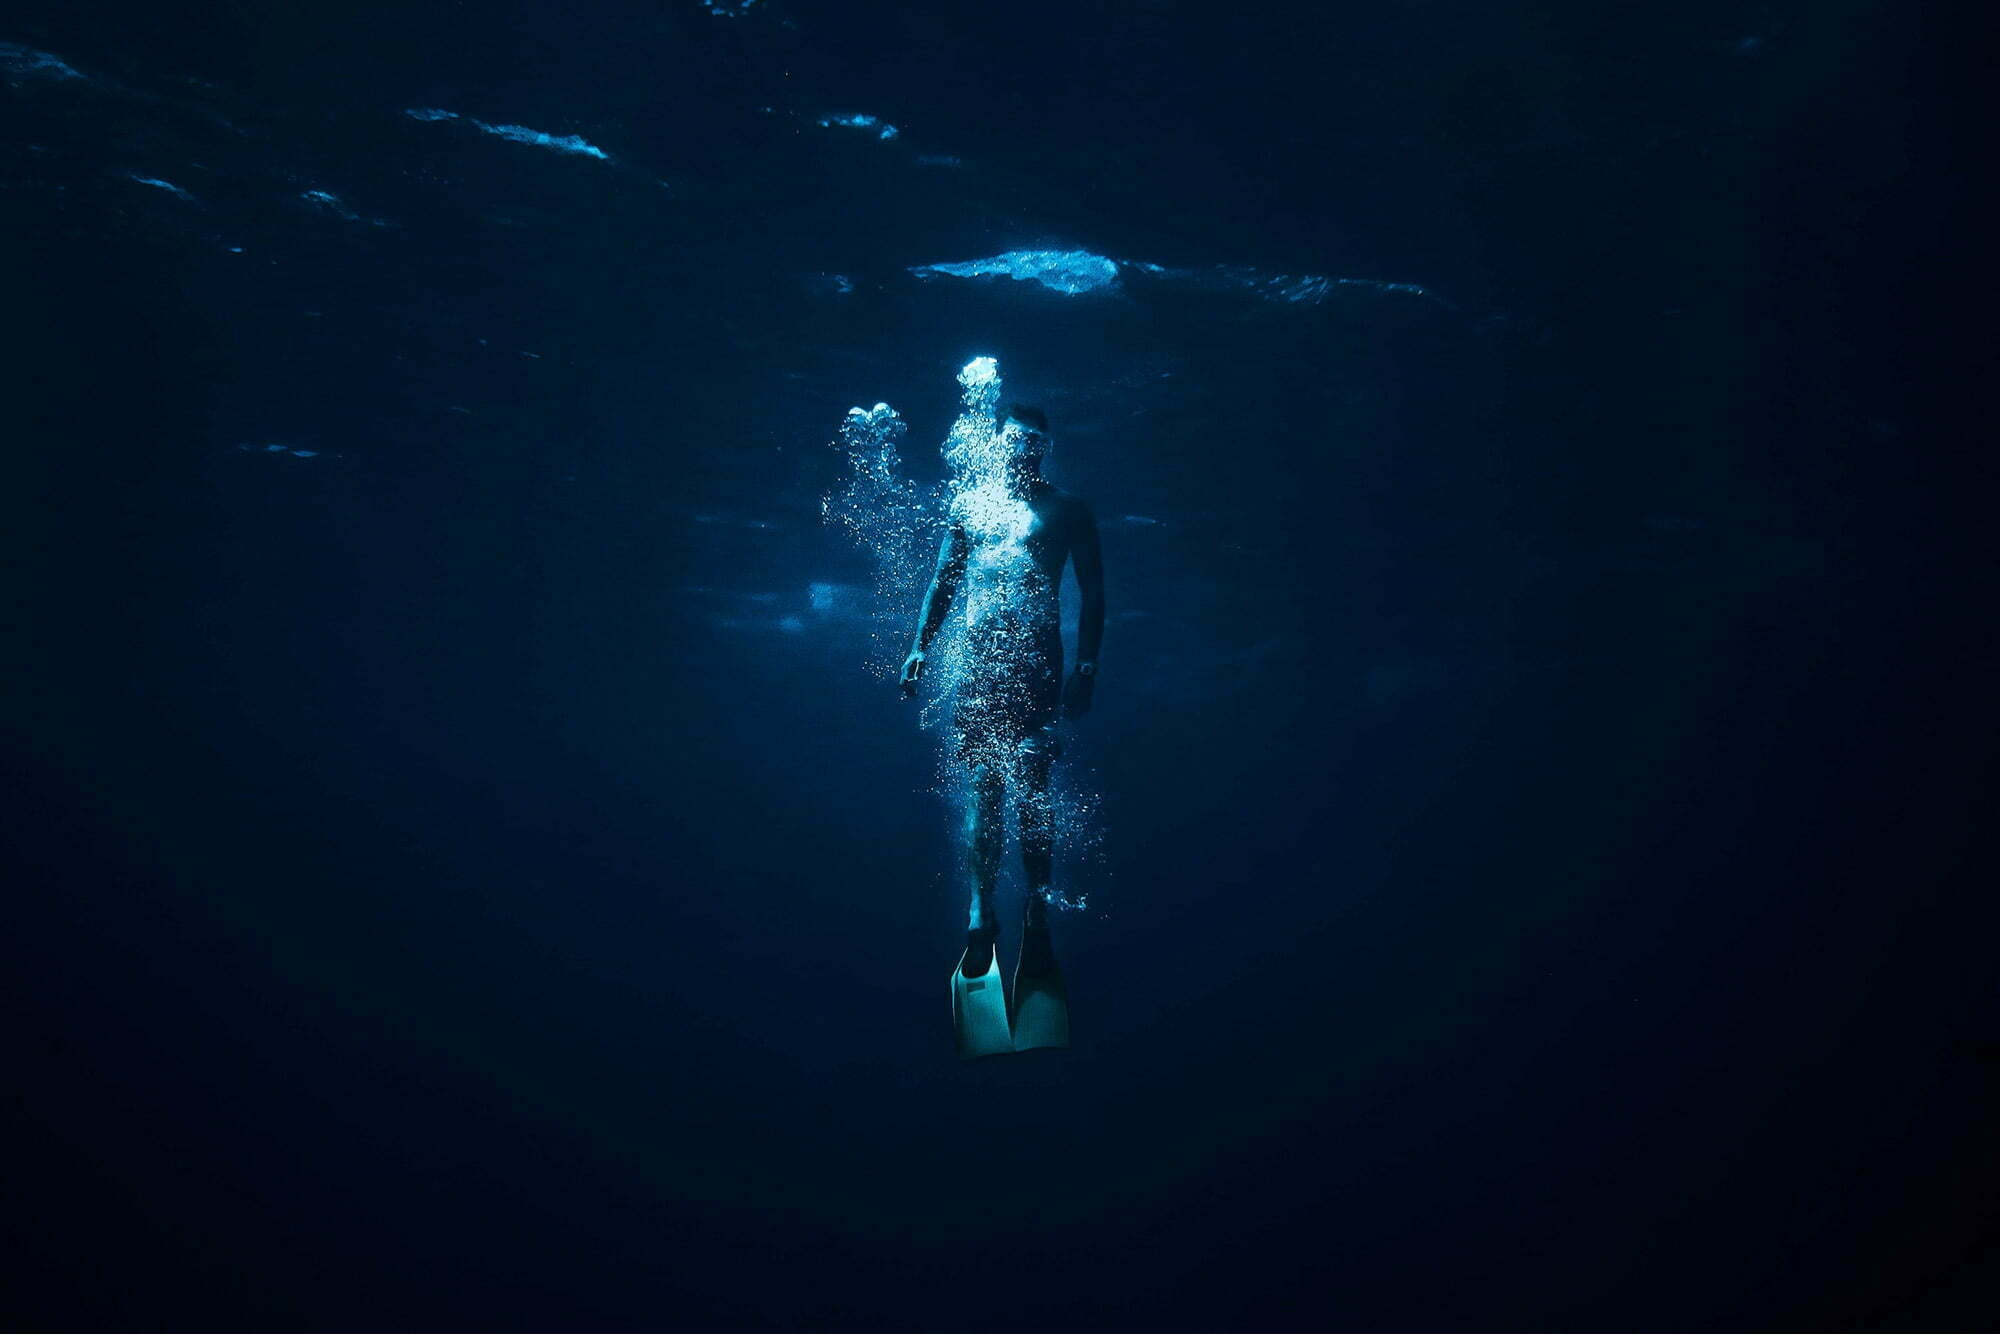 Person resurfacing from a dive in dark blue ocean water to take a breath